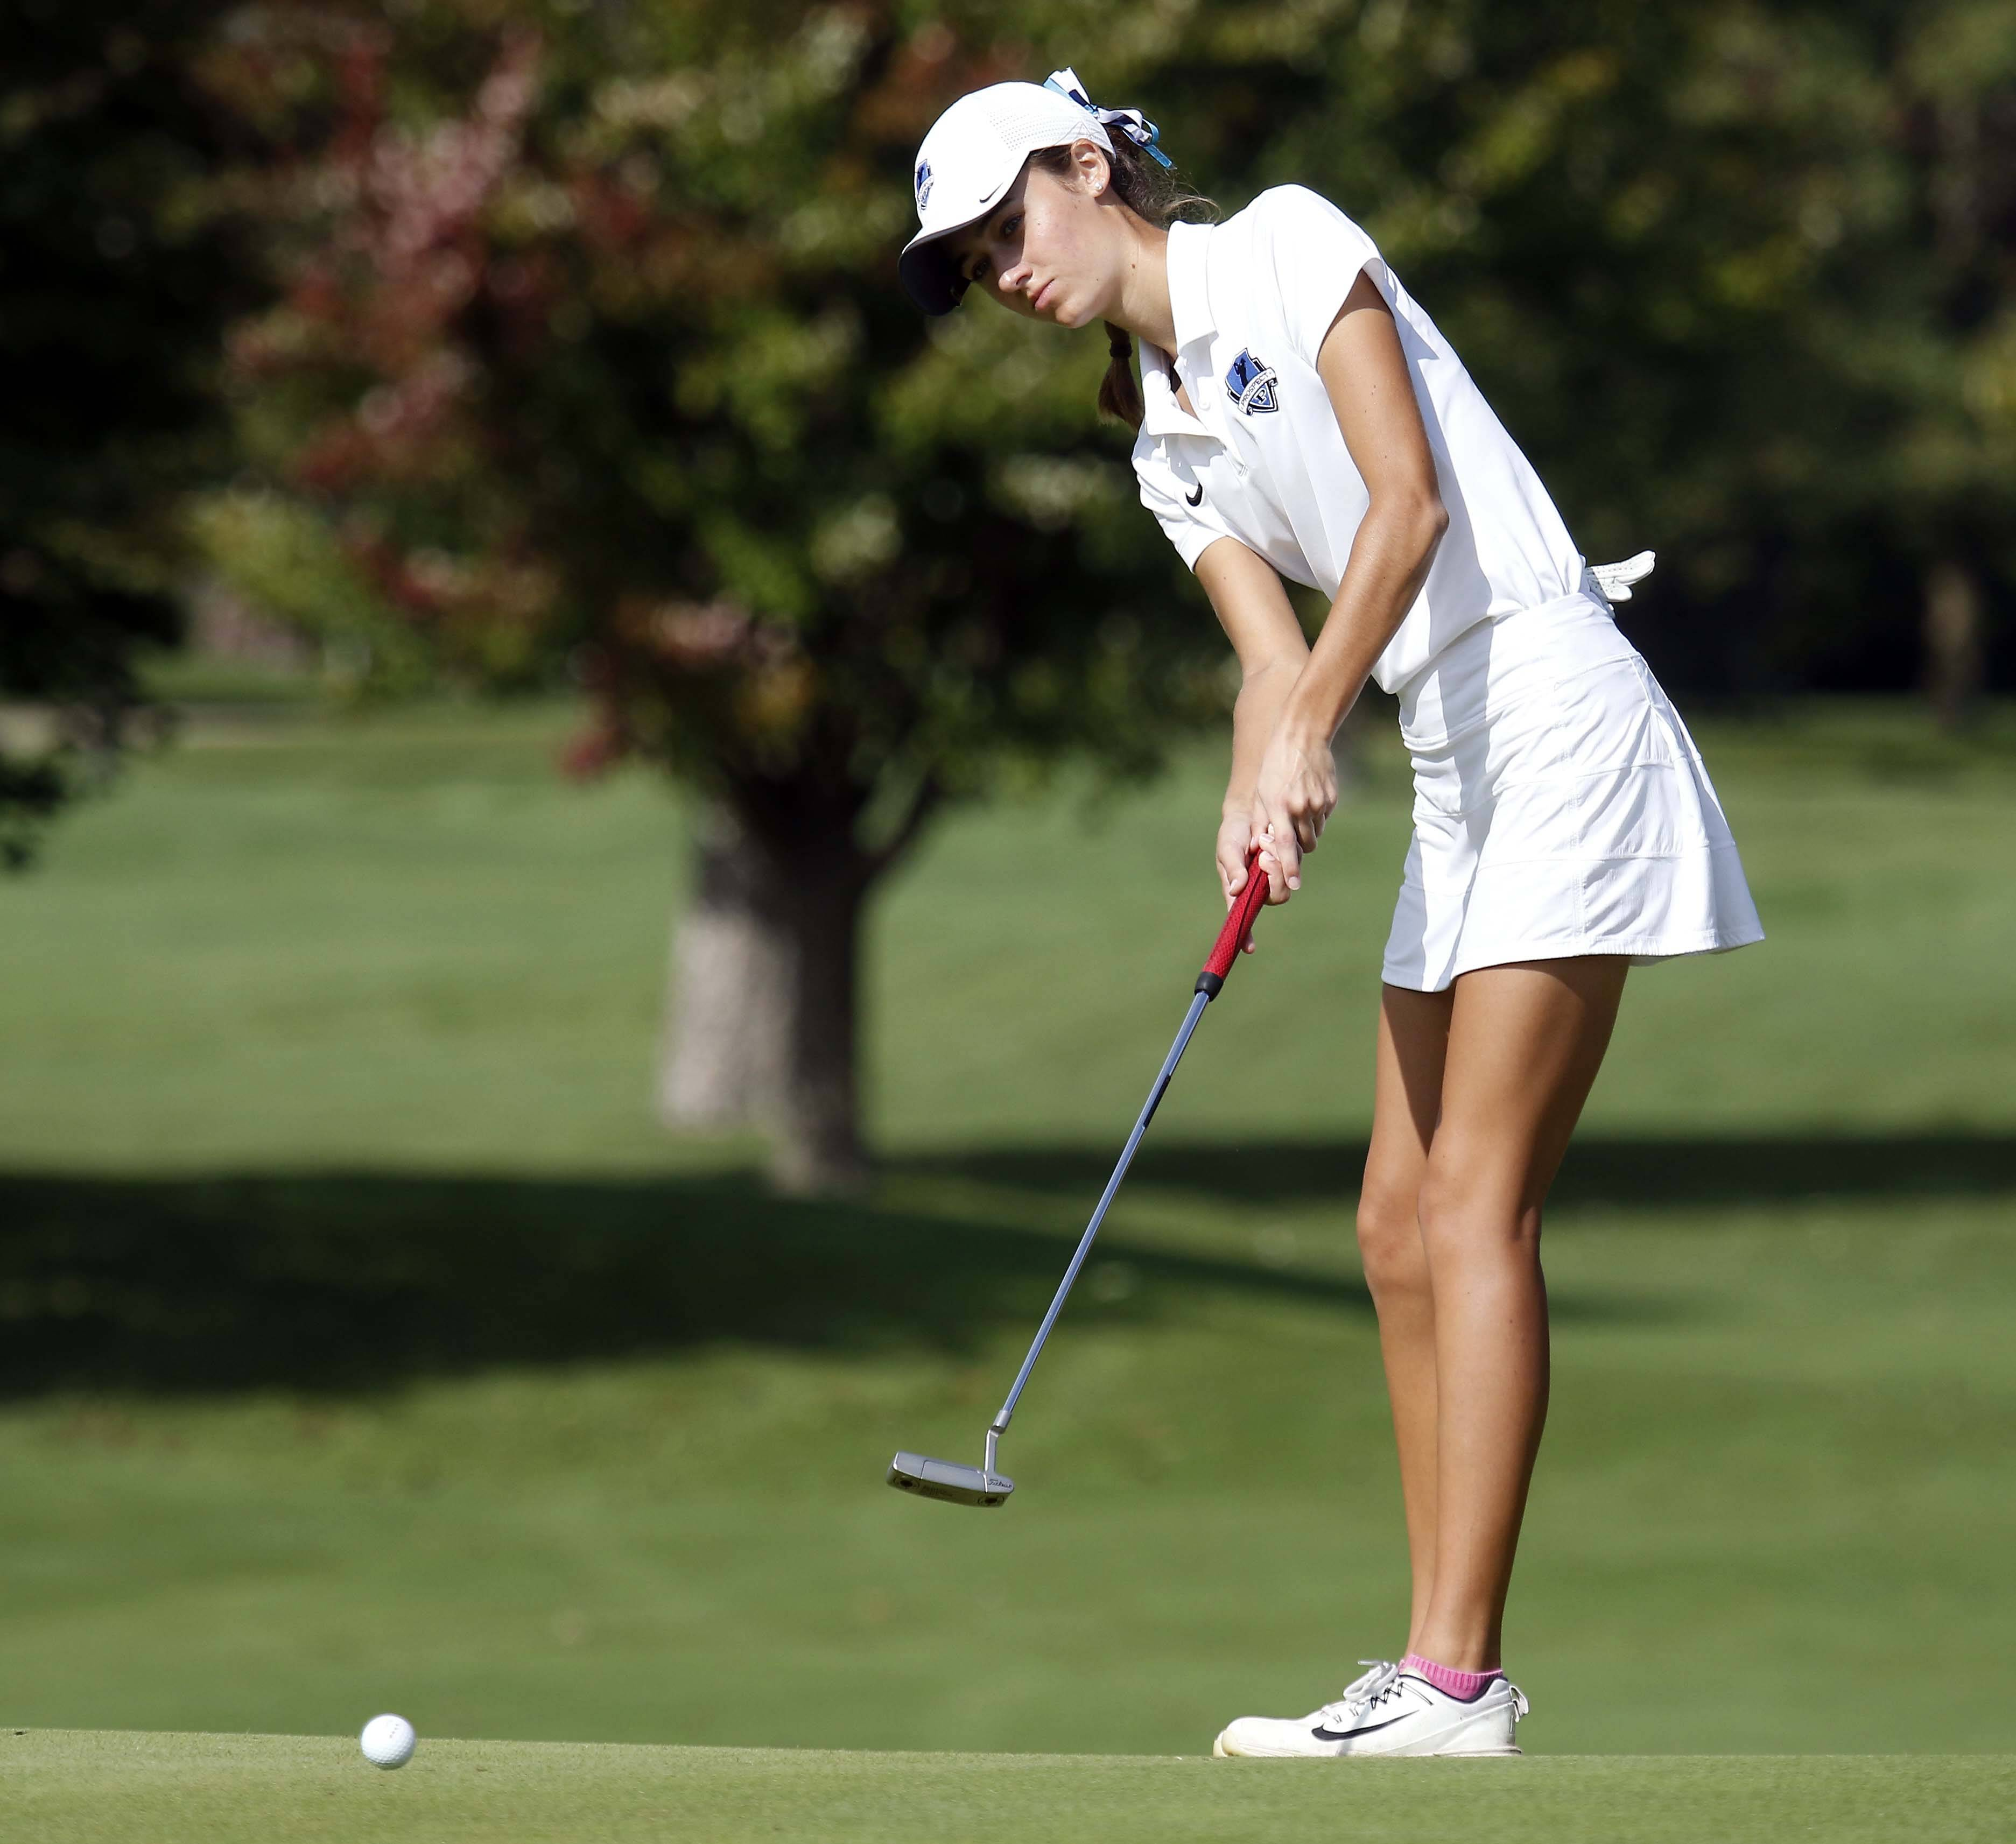 Prospect's Kelly Kavanagh Wednesday during the Stevenson girls golf regional at Arboretum Golf Club in Buffalo Grove.